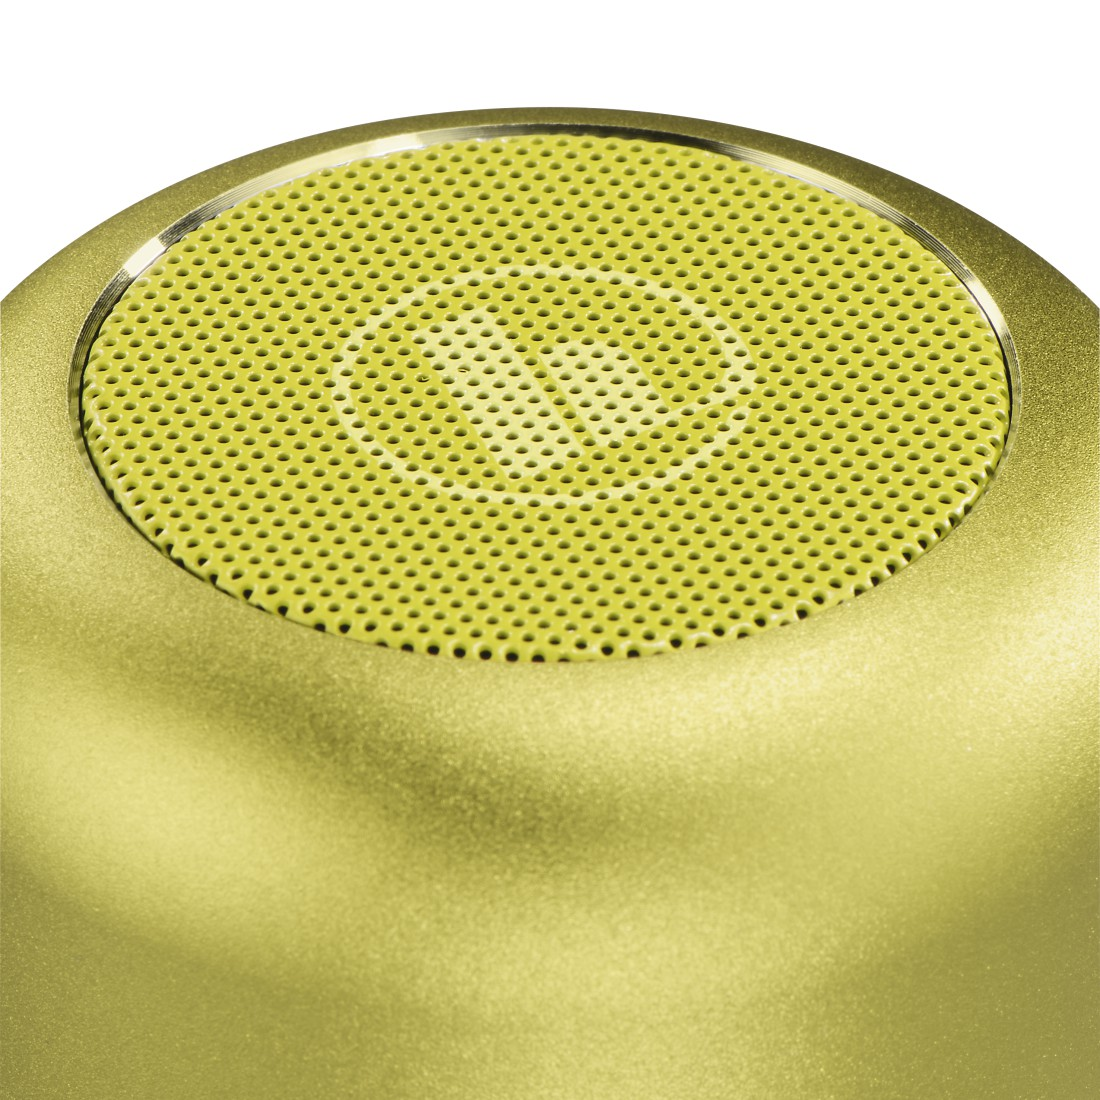 "dex High-Res Detail - Hama, Enceinte Bluetooth® ""Drum 2.0"", 3,5 W, vert jaune"